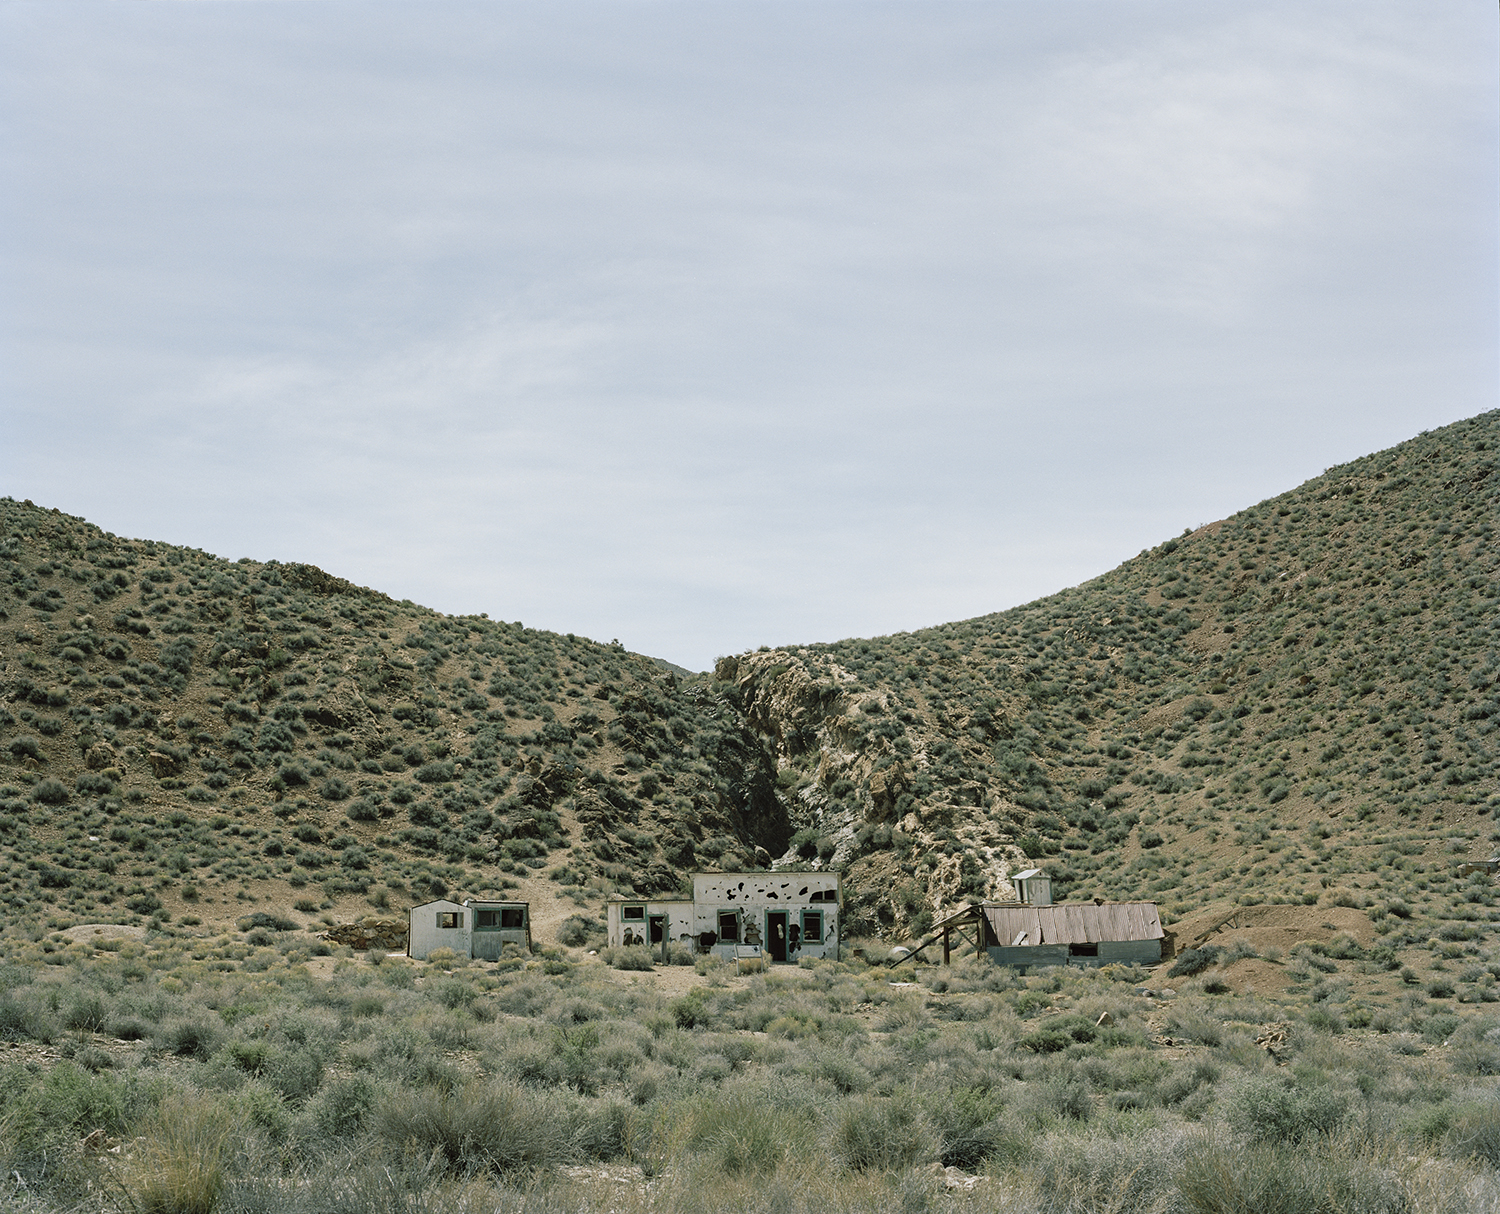 The Aguereberry Site, Panamint Range, Mojave Desert, Inyo County, California, USA.